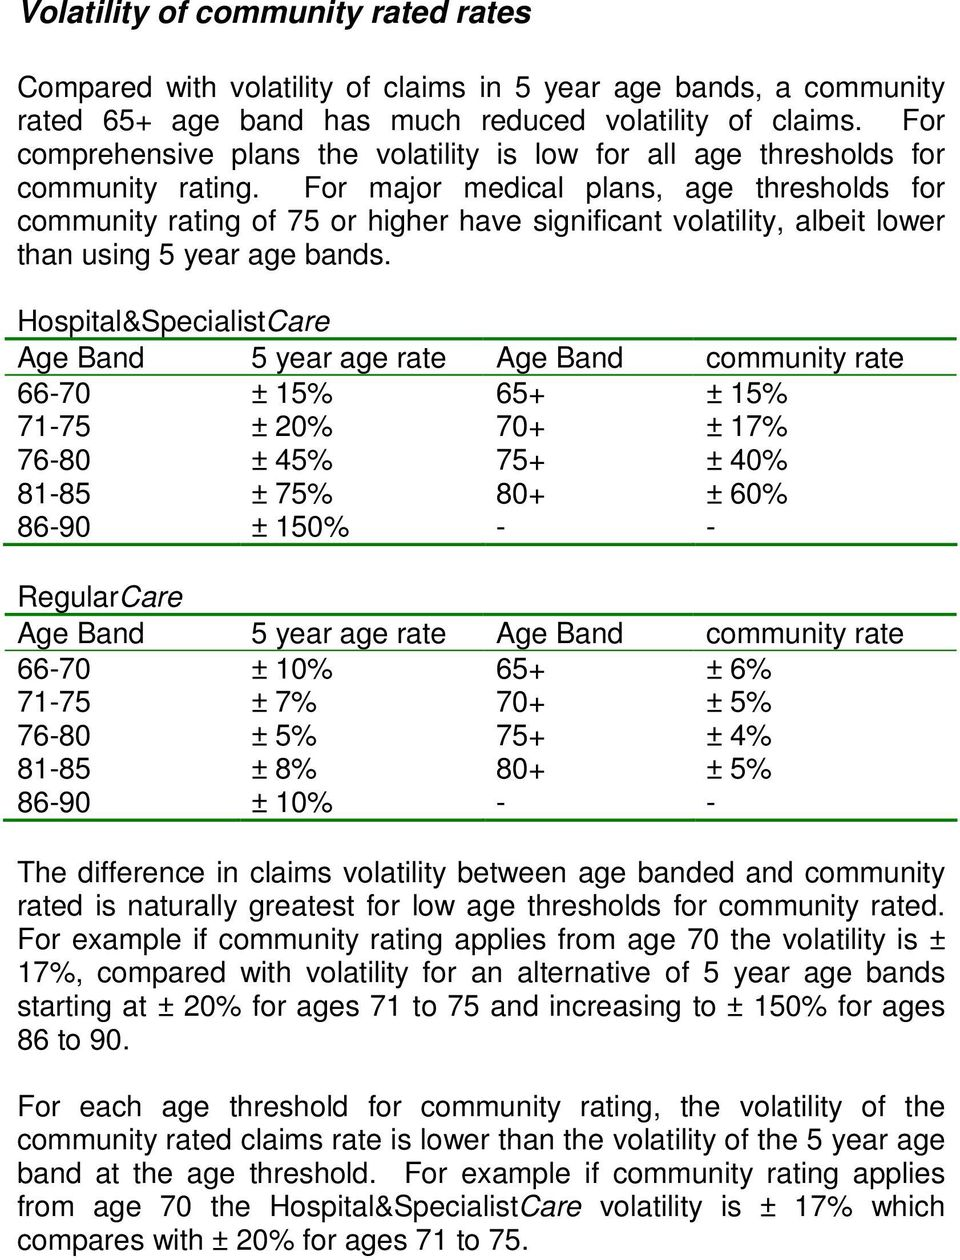 For major medical plans, age thresholds for community rating of 75 or higher have significant volatility, albeit lower than using 5 year age bands.